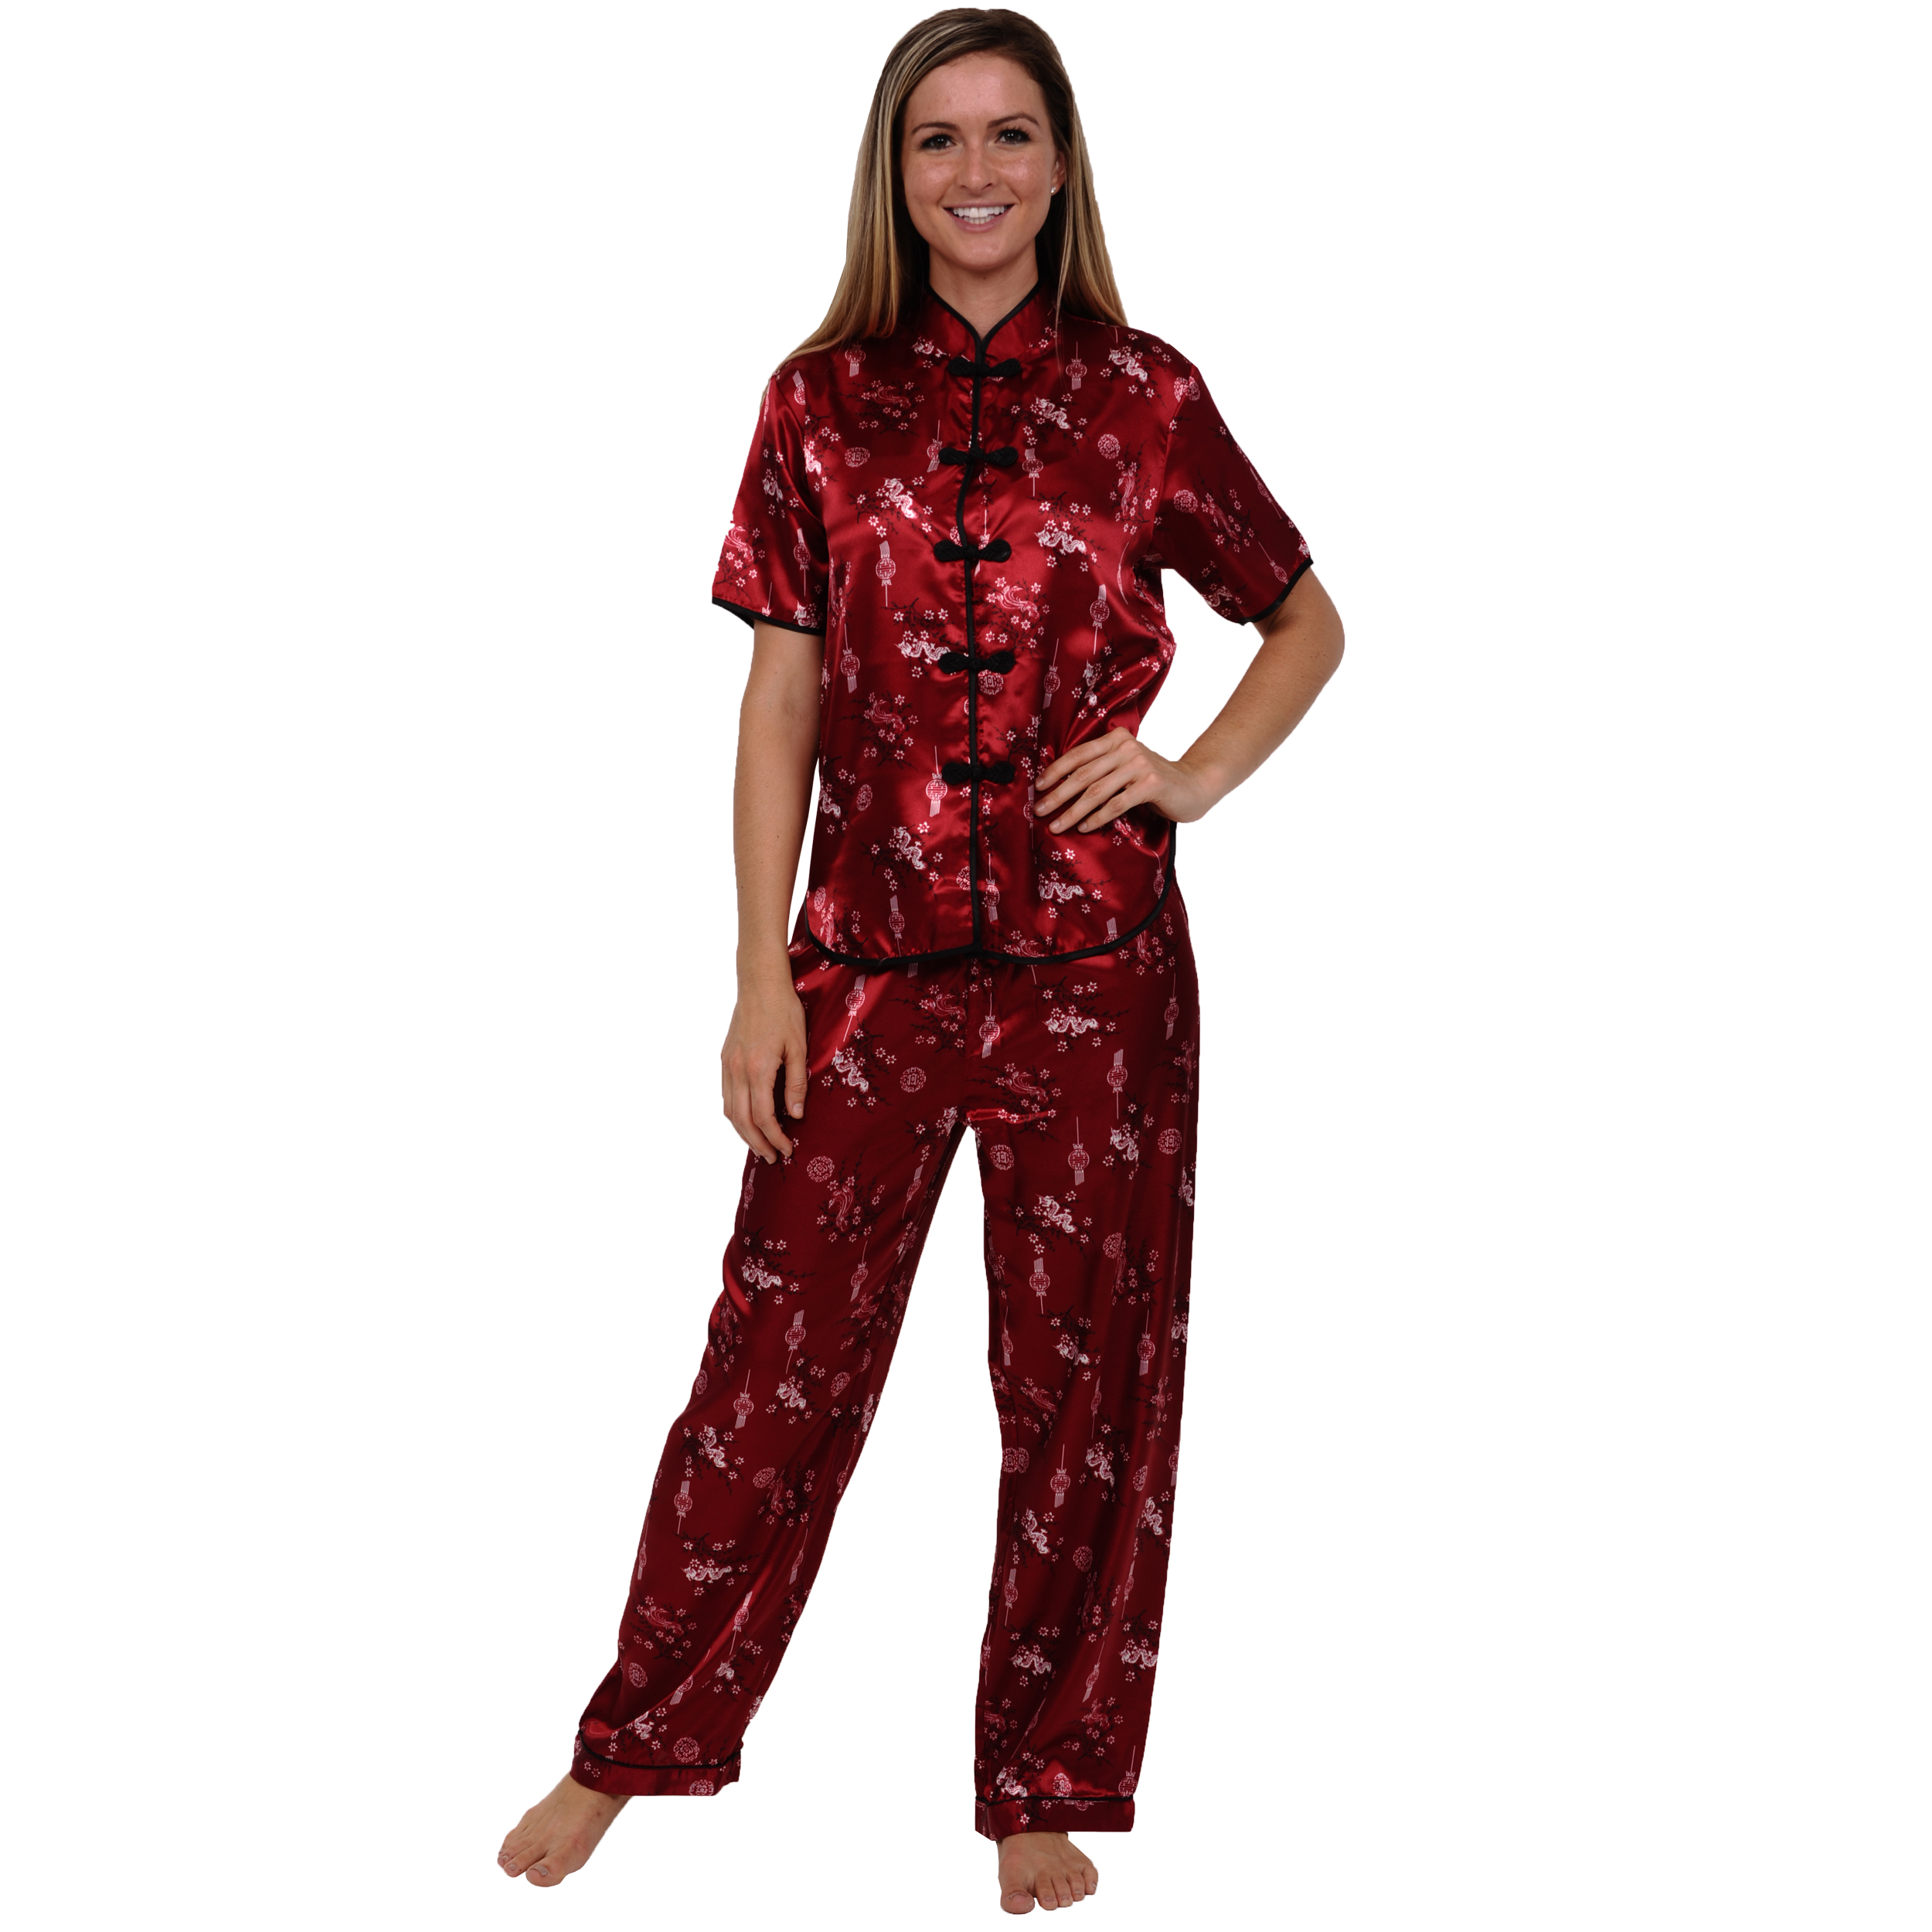 Women's Chinese Pajama Set | Pjs with Frog Enclosures | Del Rossa